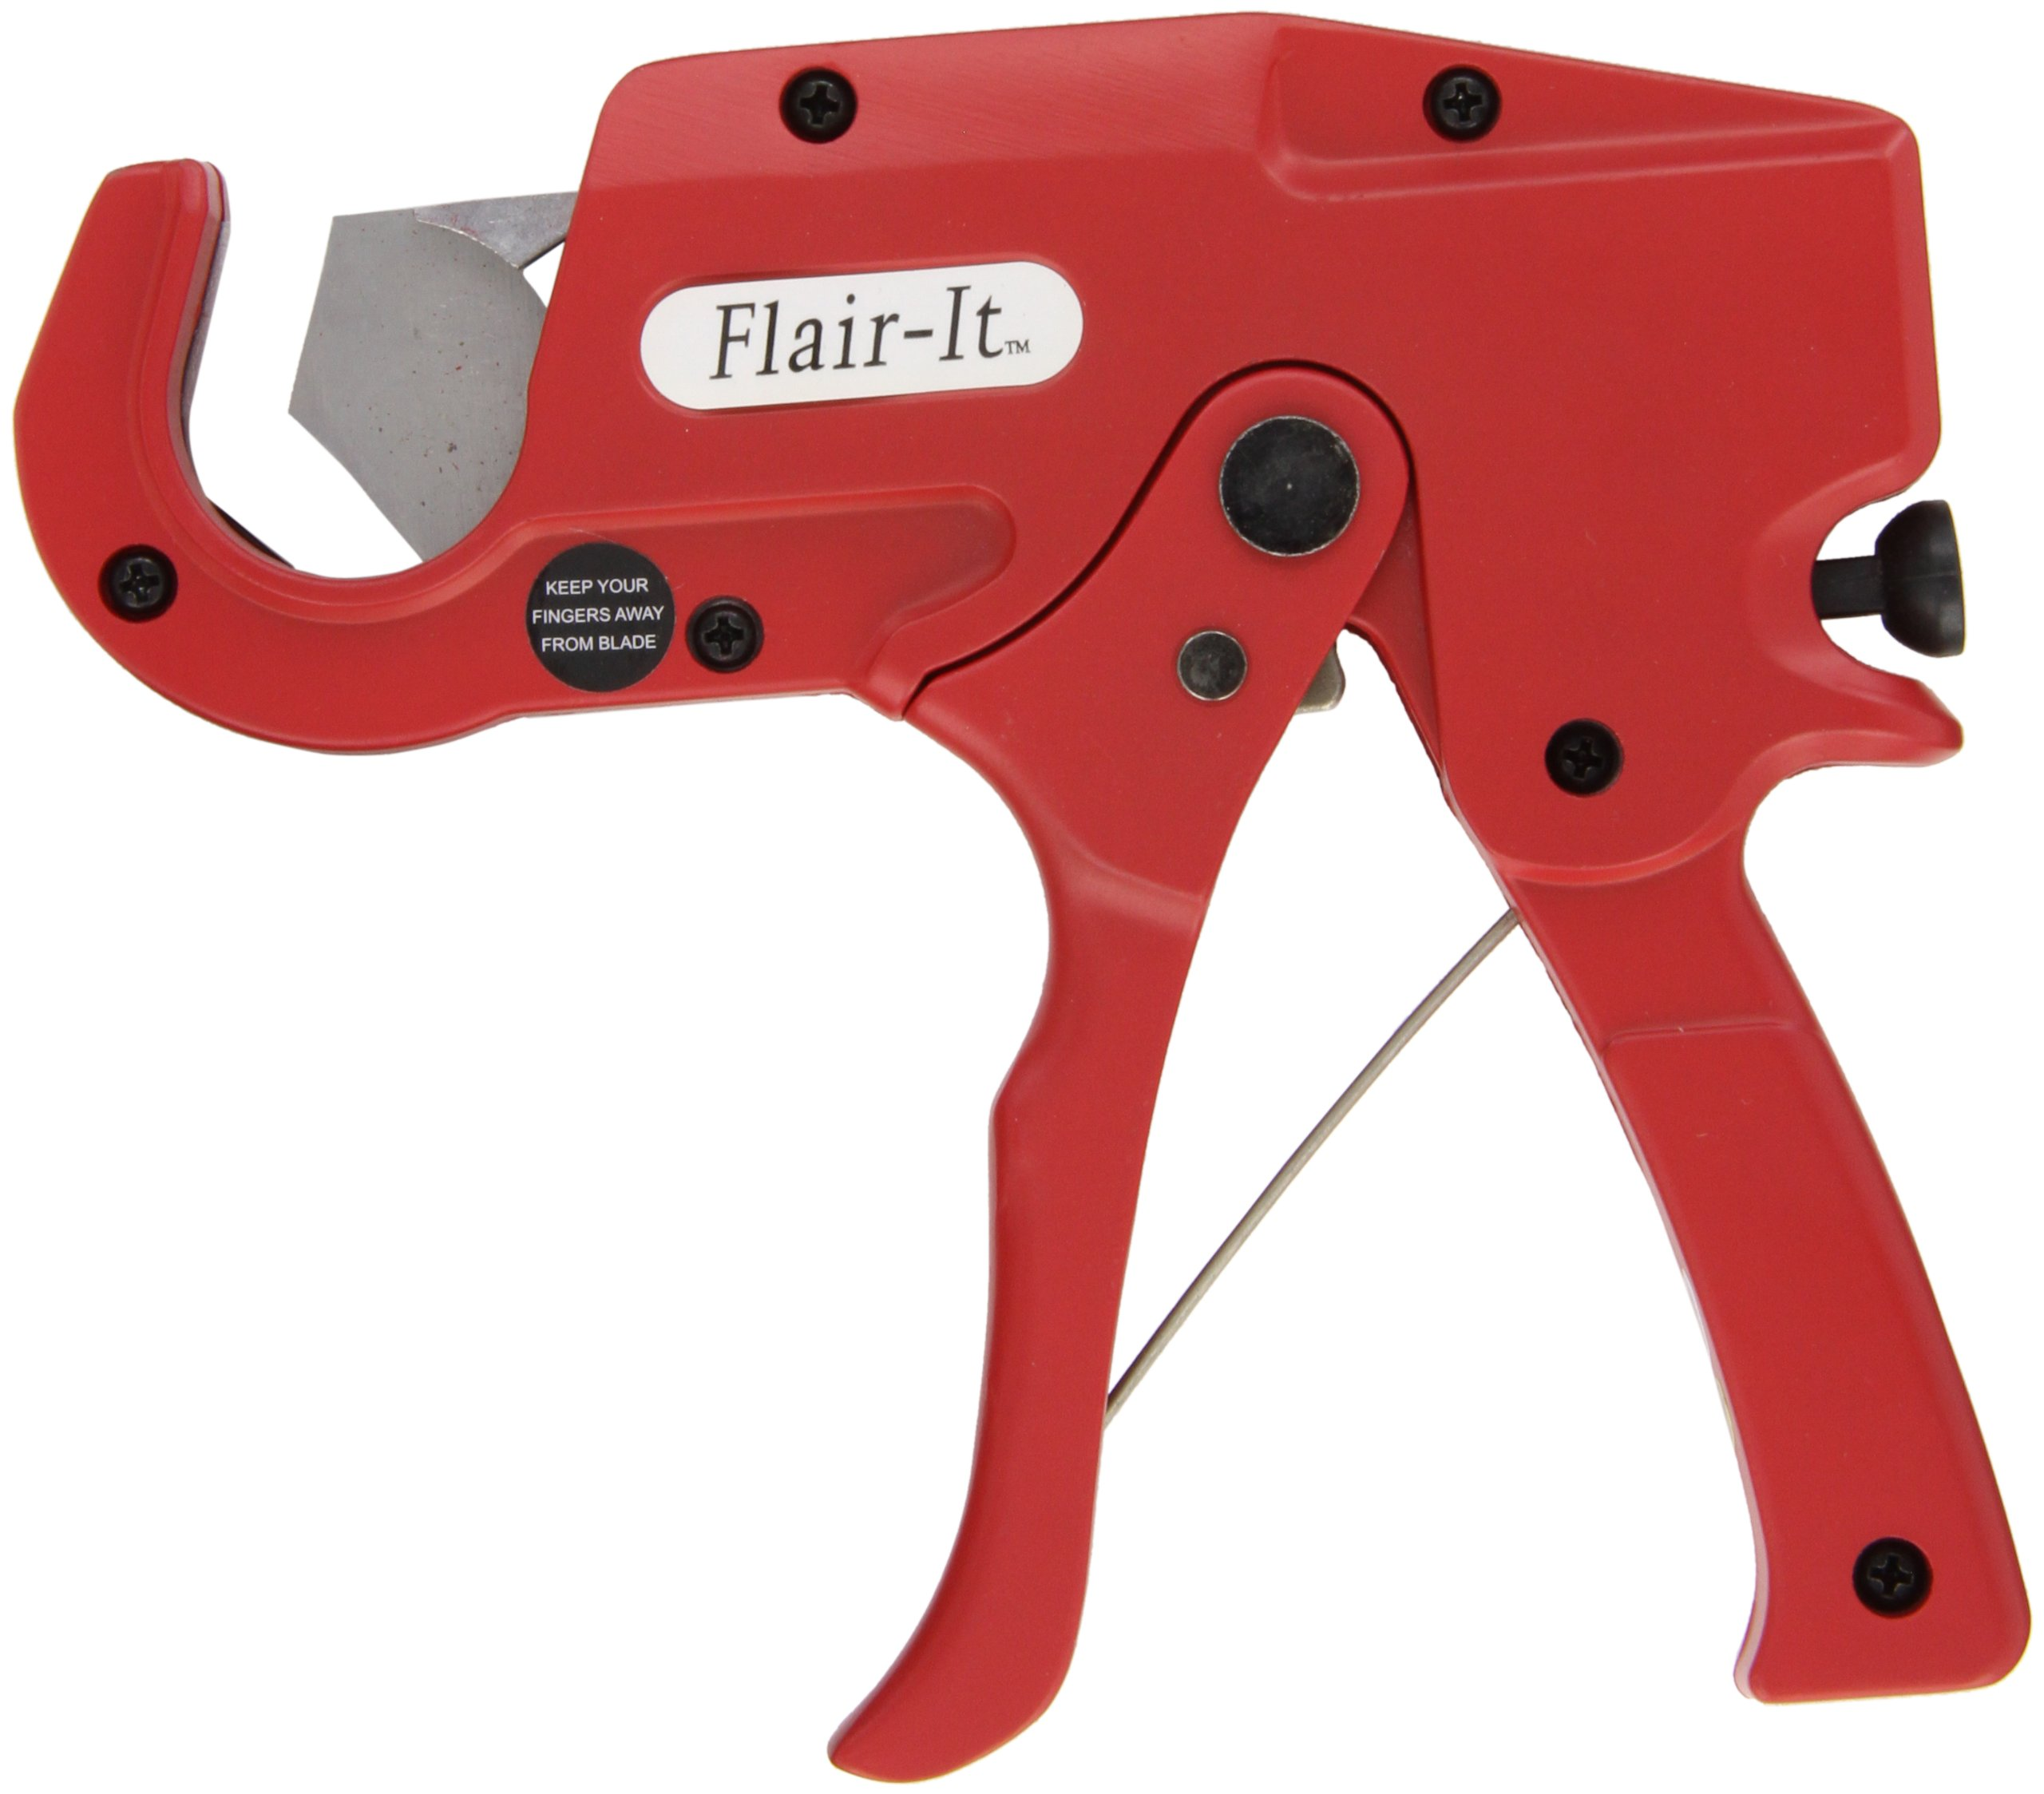 Flair-It 01100 Metal Pro Point Ratchet Cutter